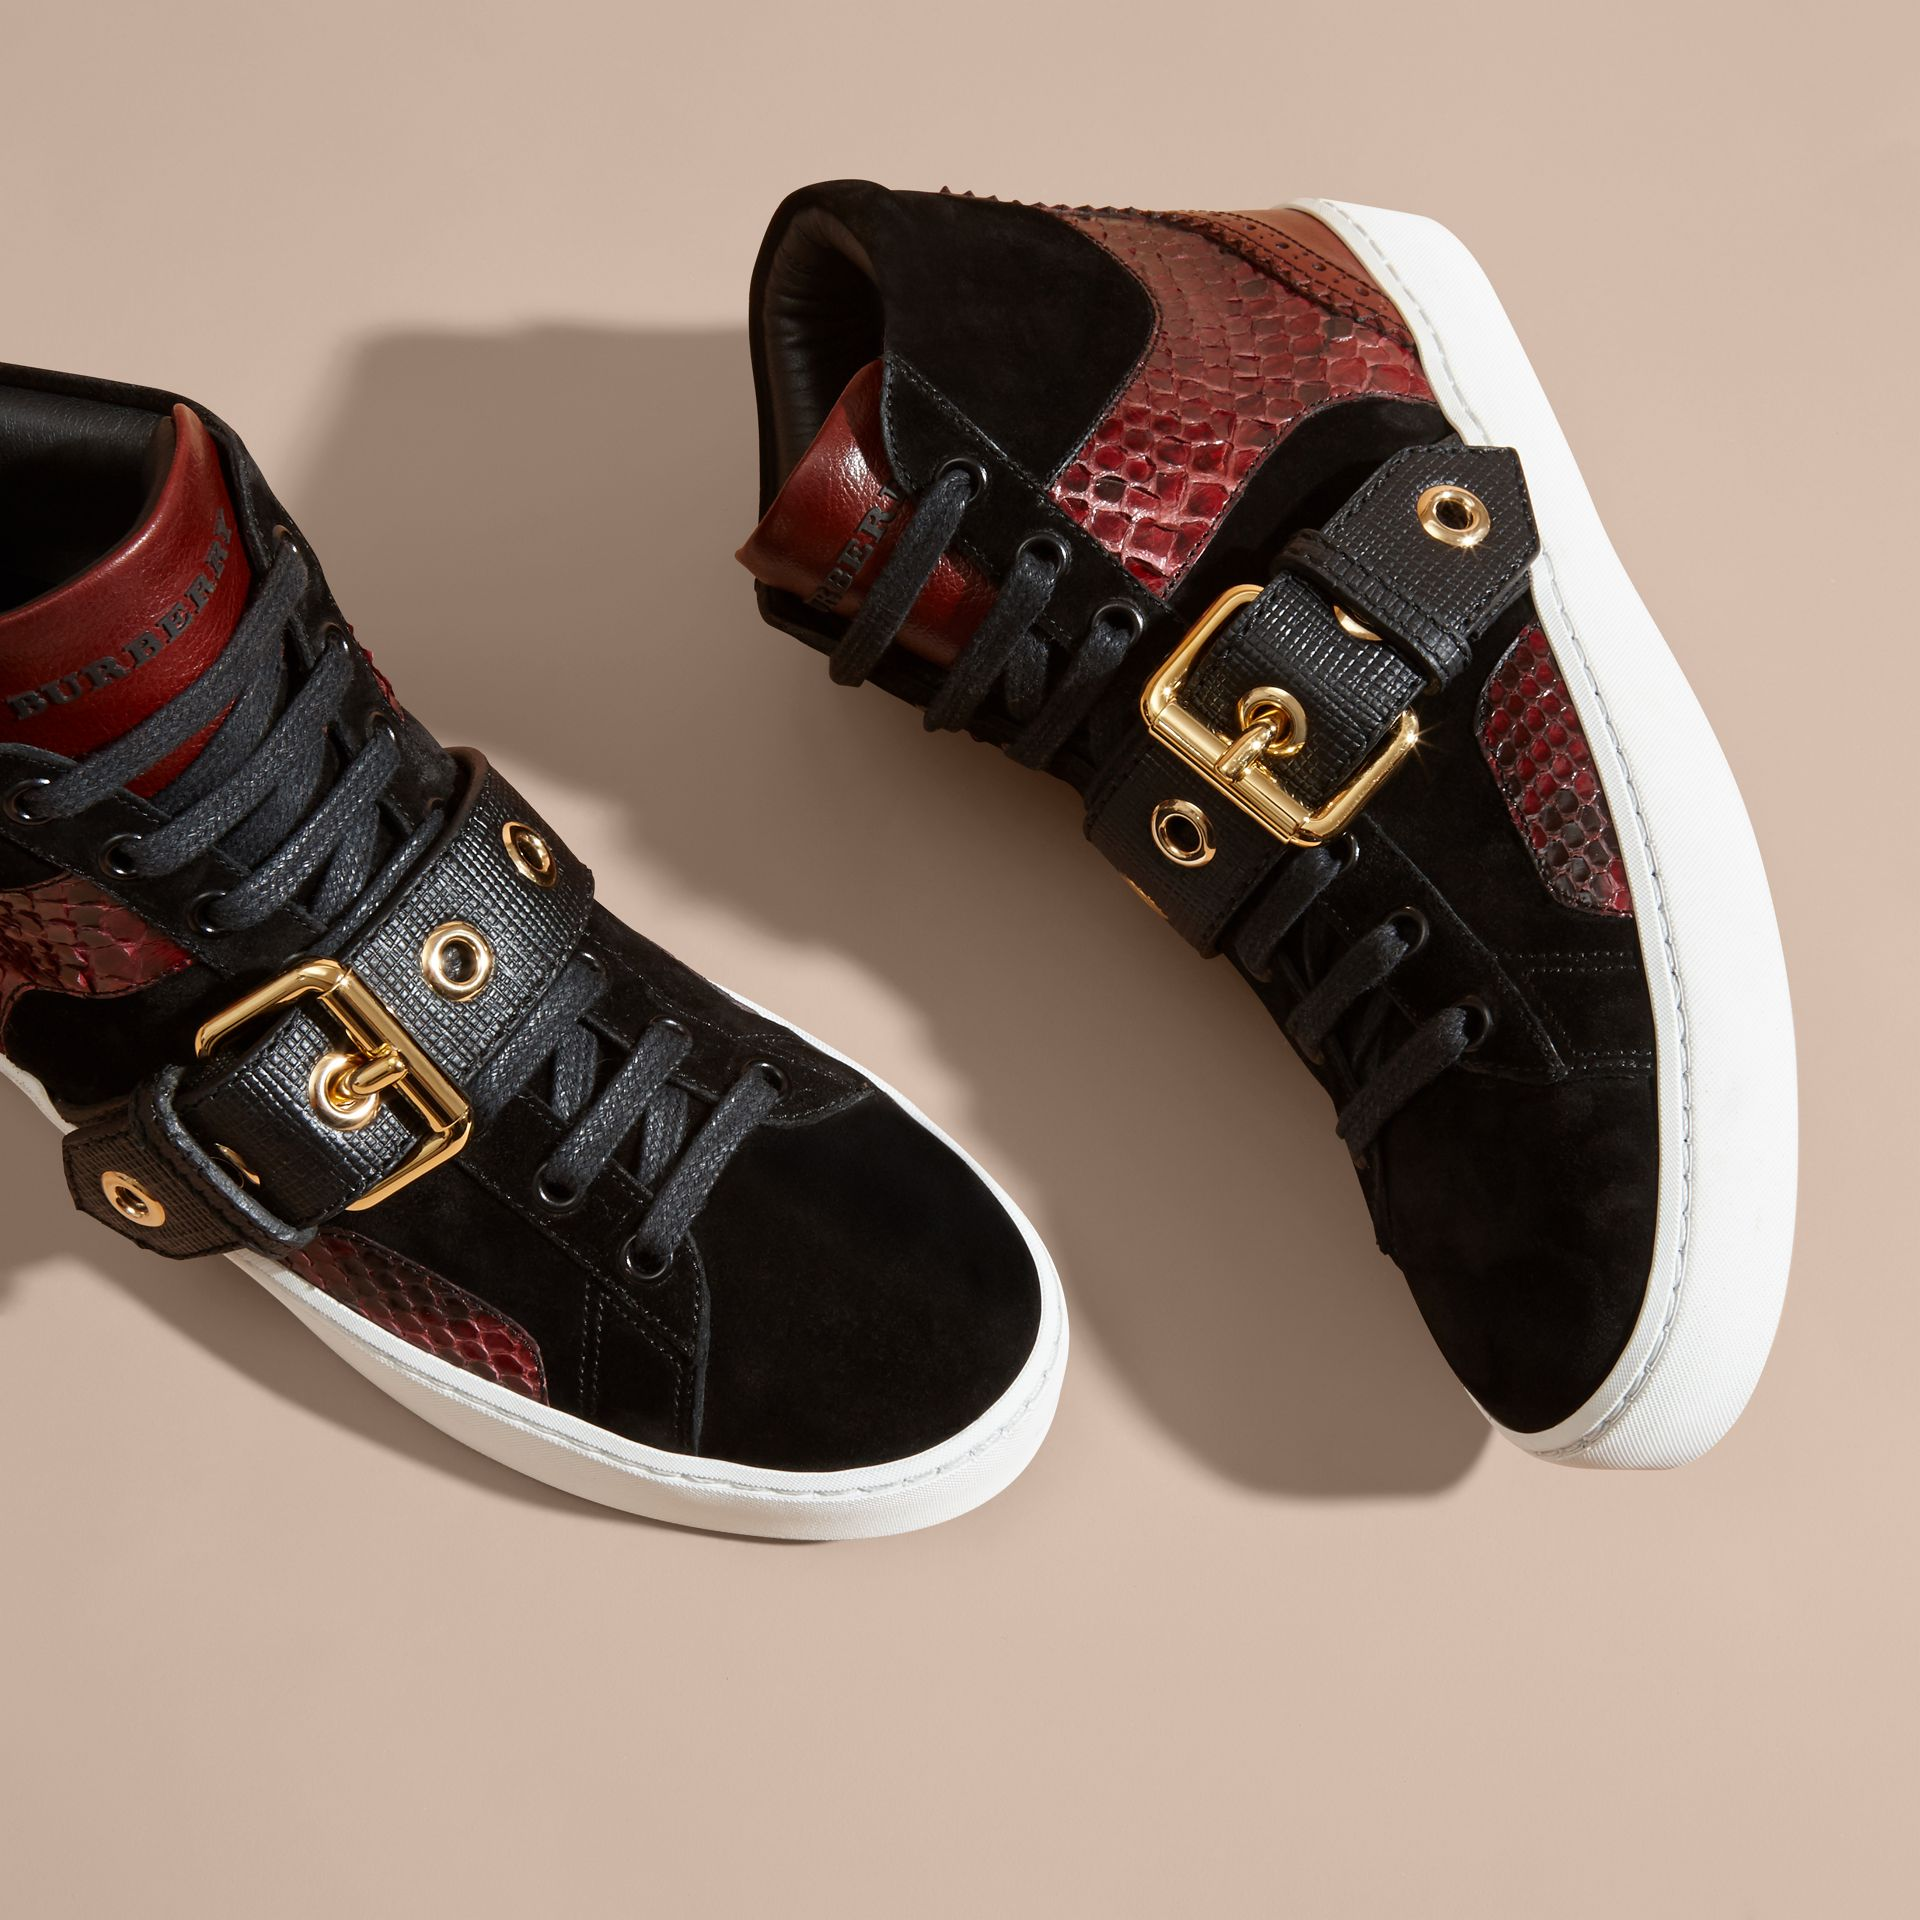 Buckle Detail Leather and Snakeskin High-top Trainers in Bordeaux - gallery image 3